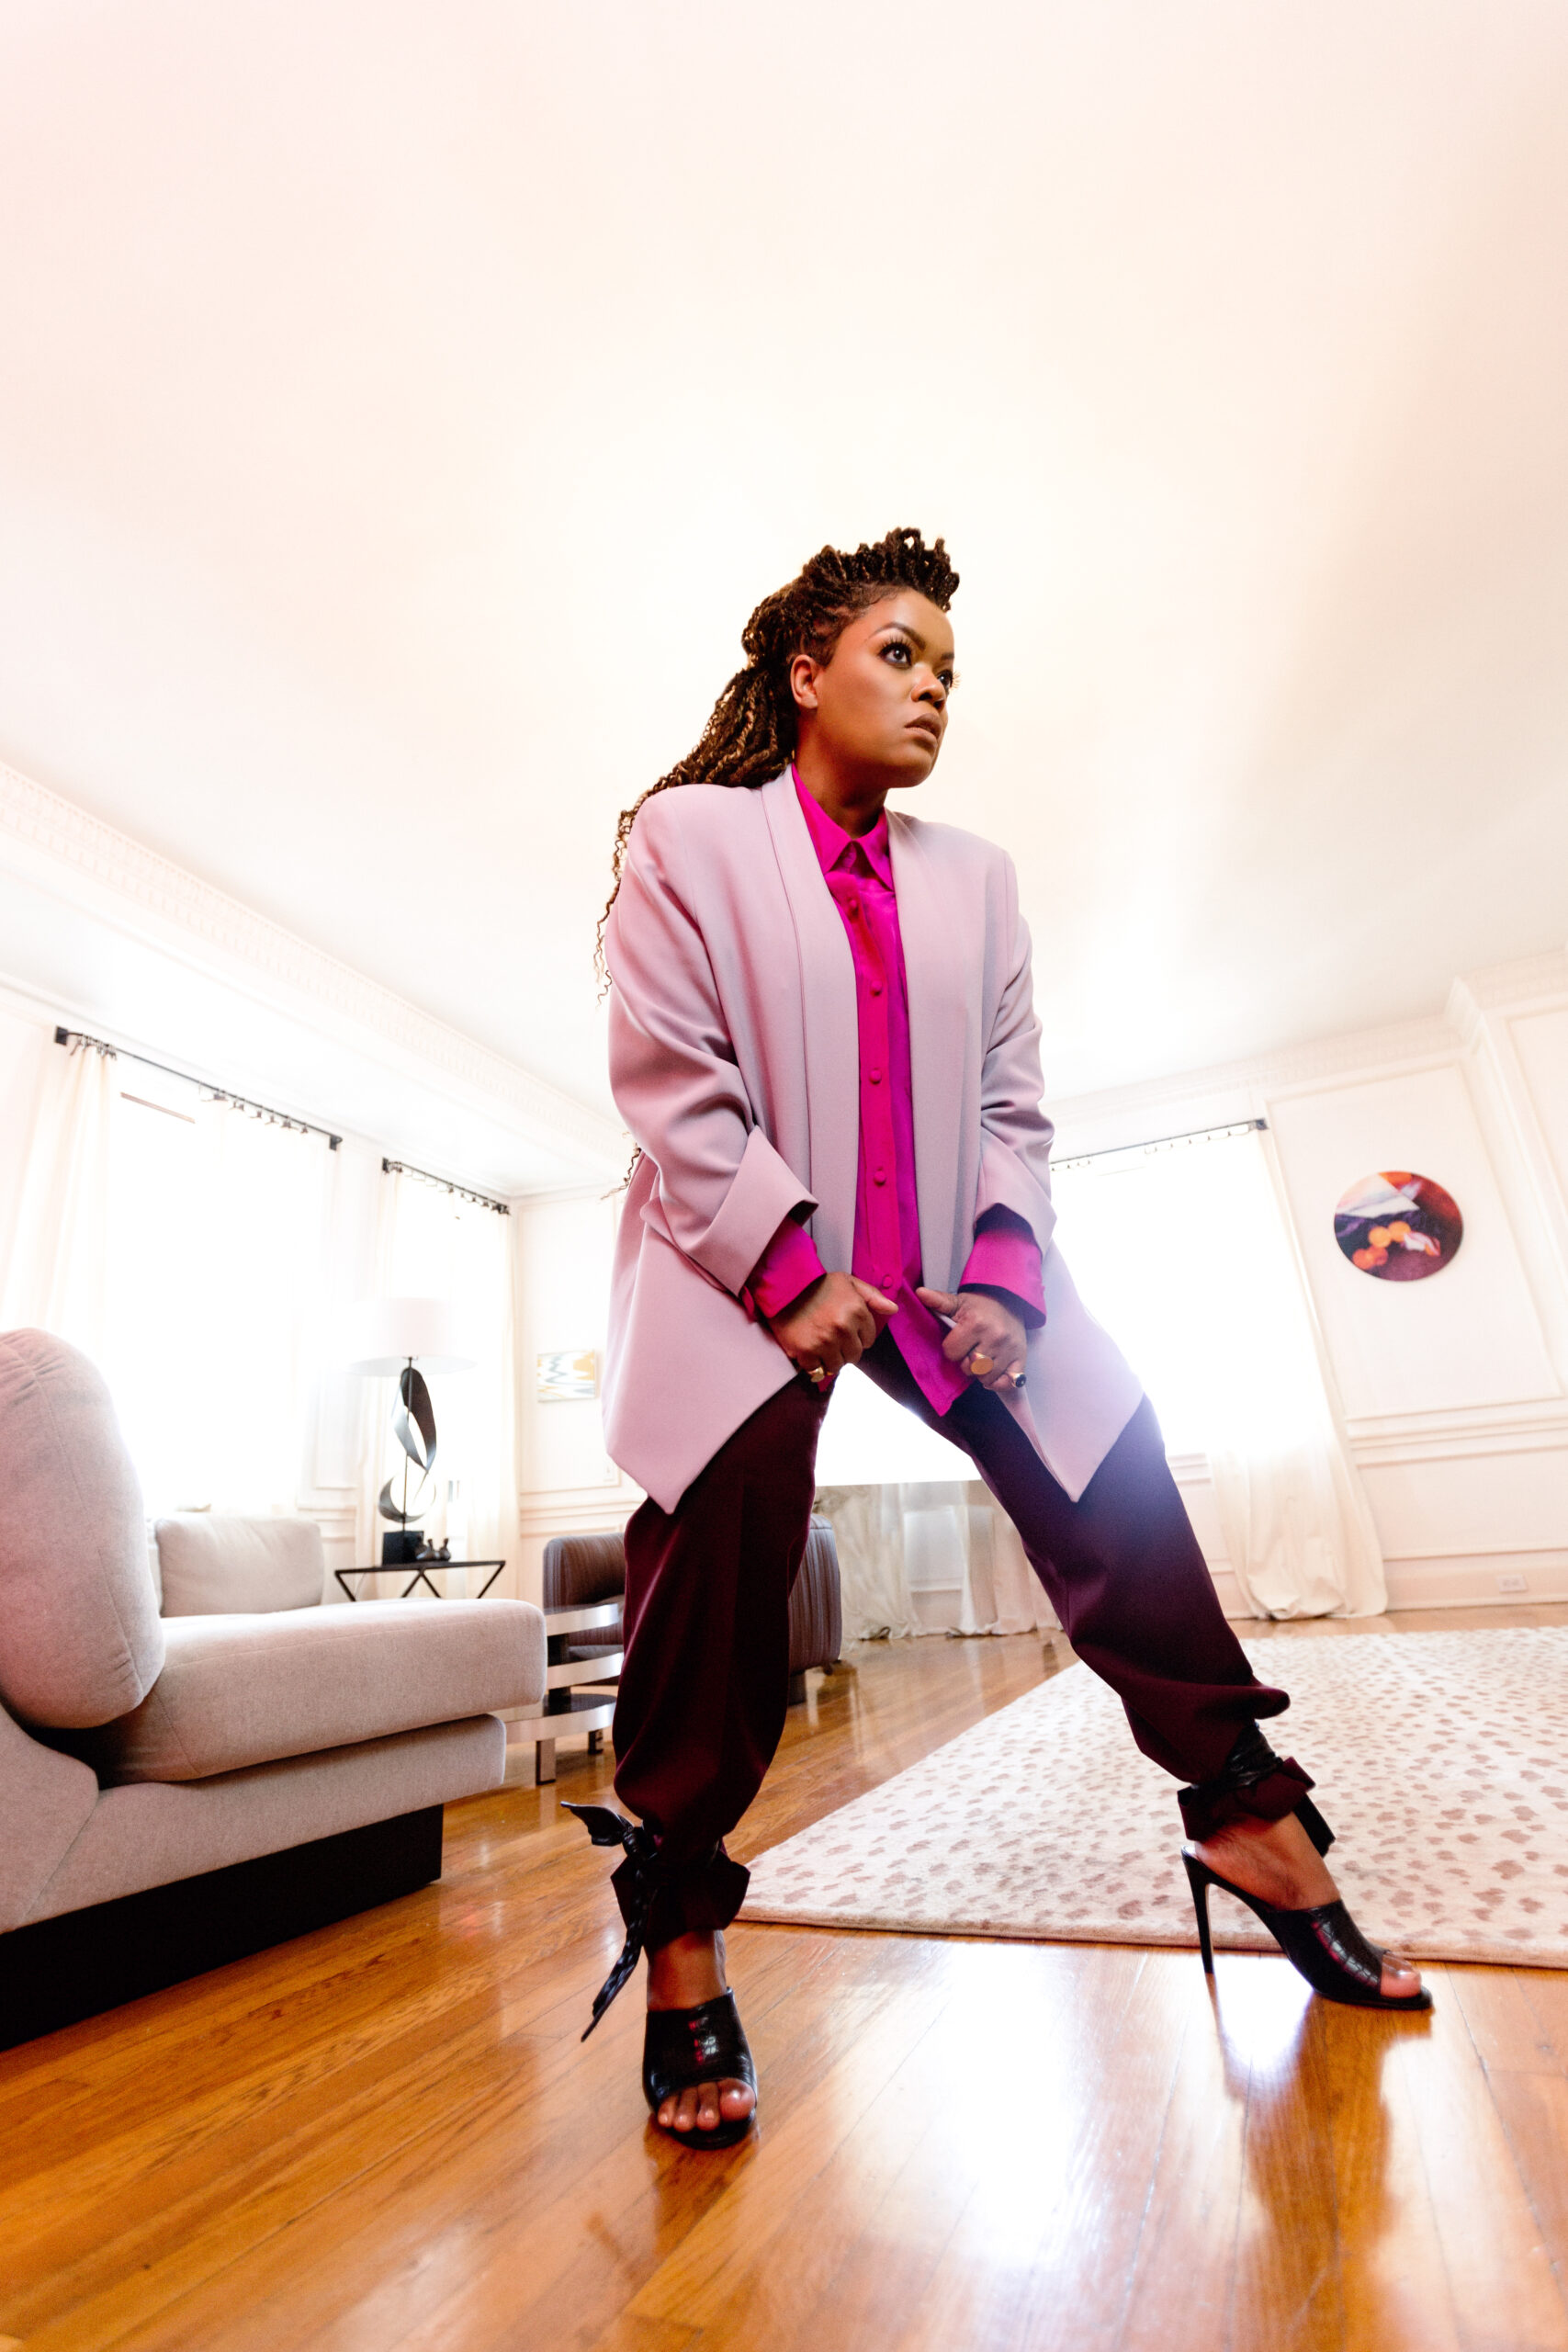 Founder and Designer Cynthia Vincent announced Yvette Nicole Brown is the face of the brand.